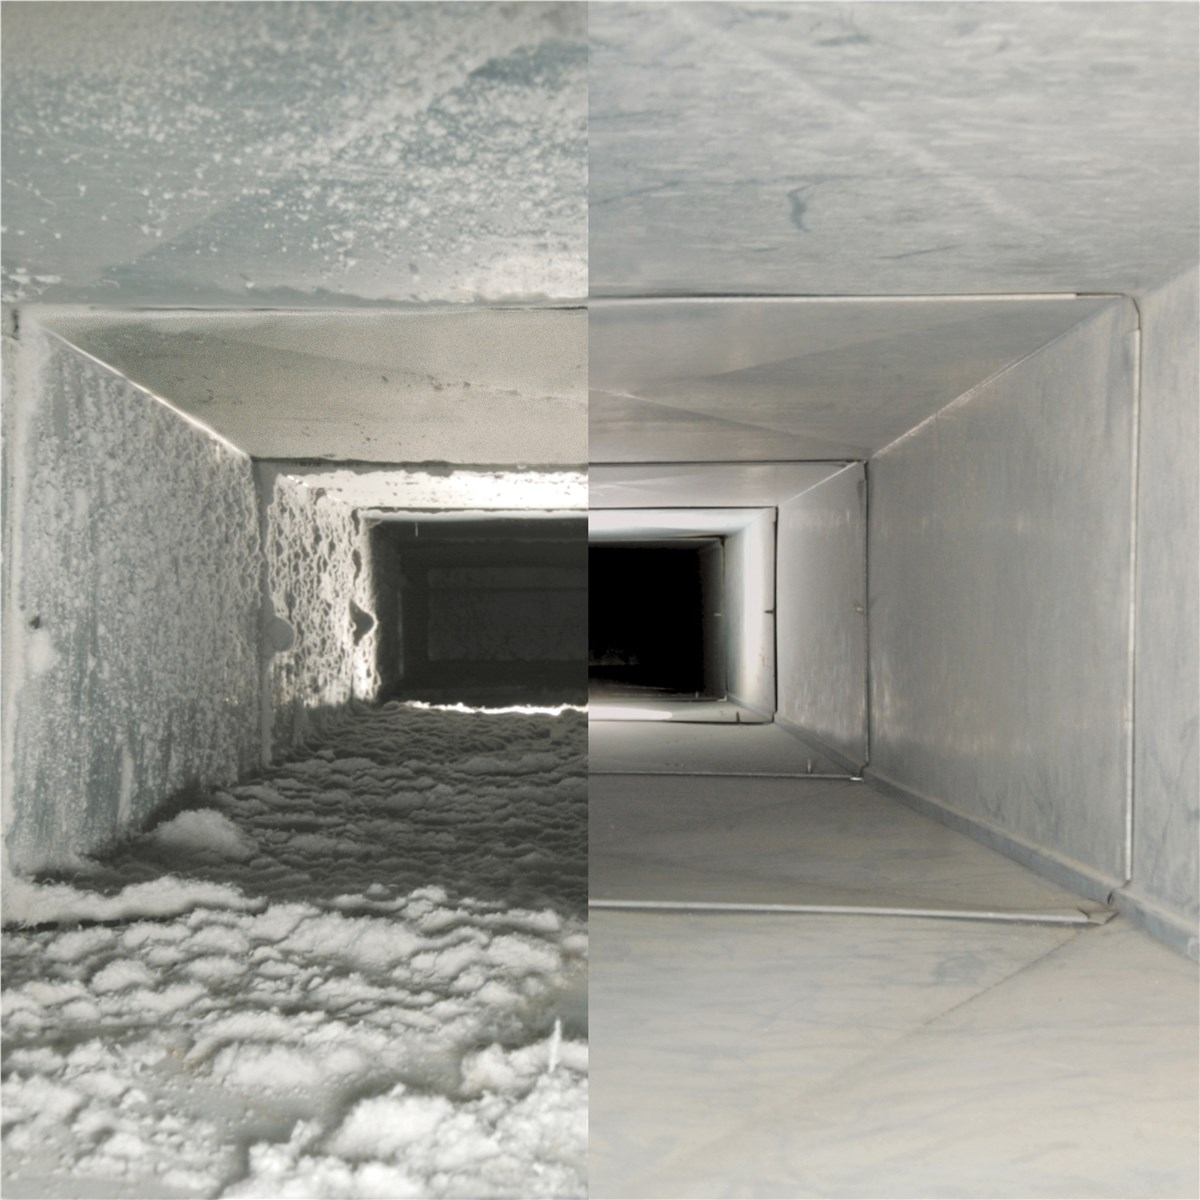 Professional Air Duct Cleaning Services In Montgomery, AL